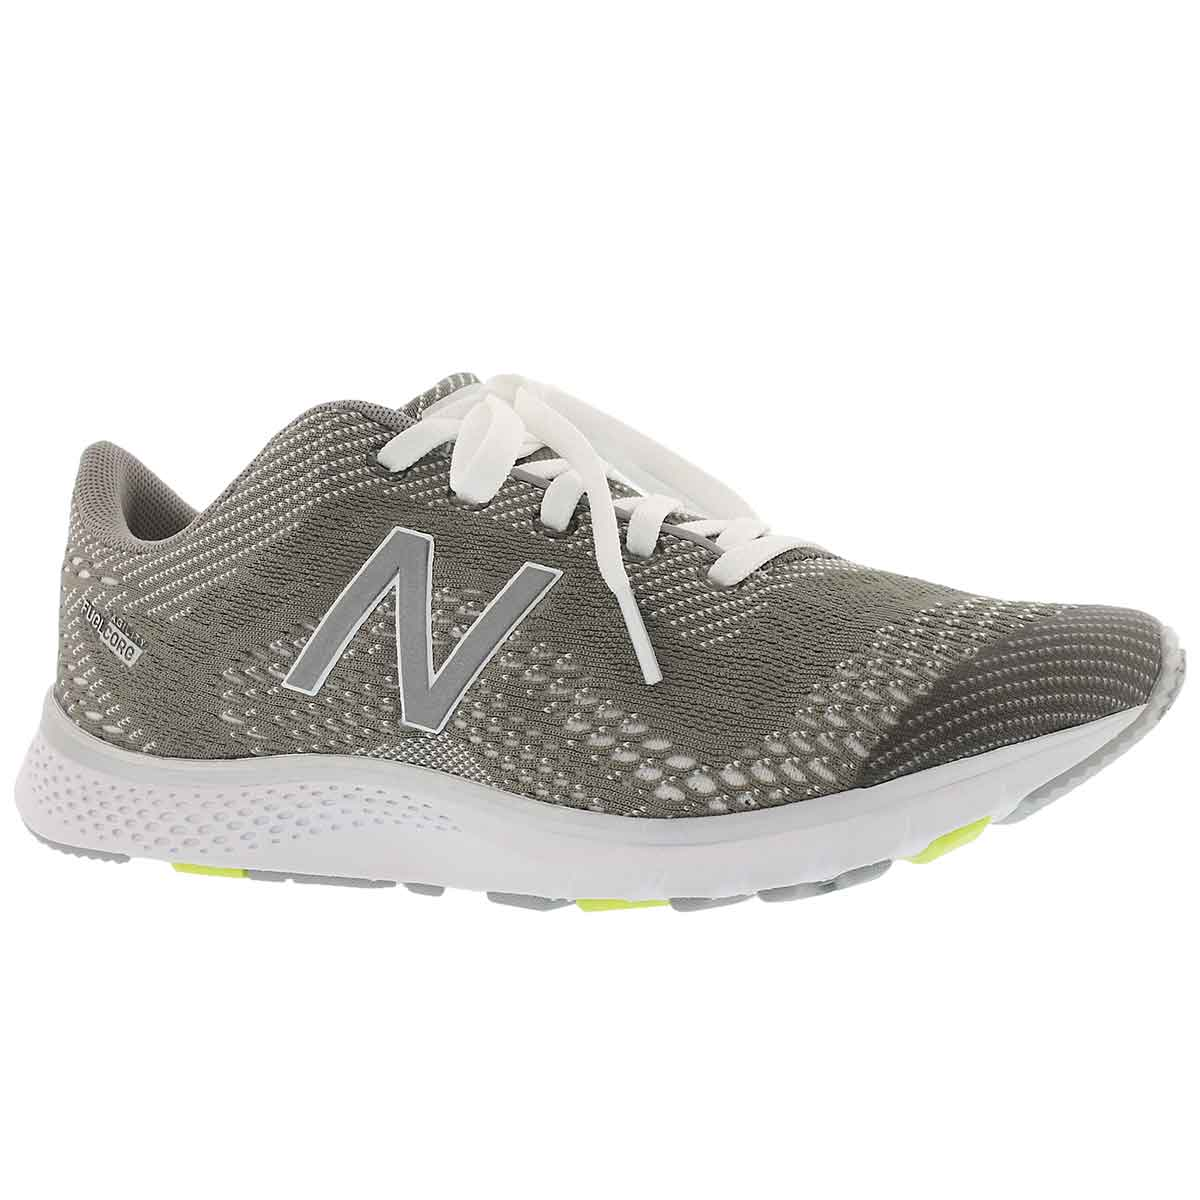 Women's AGILITY V2 silver/white lace up sneakers